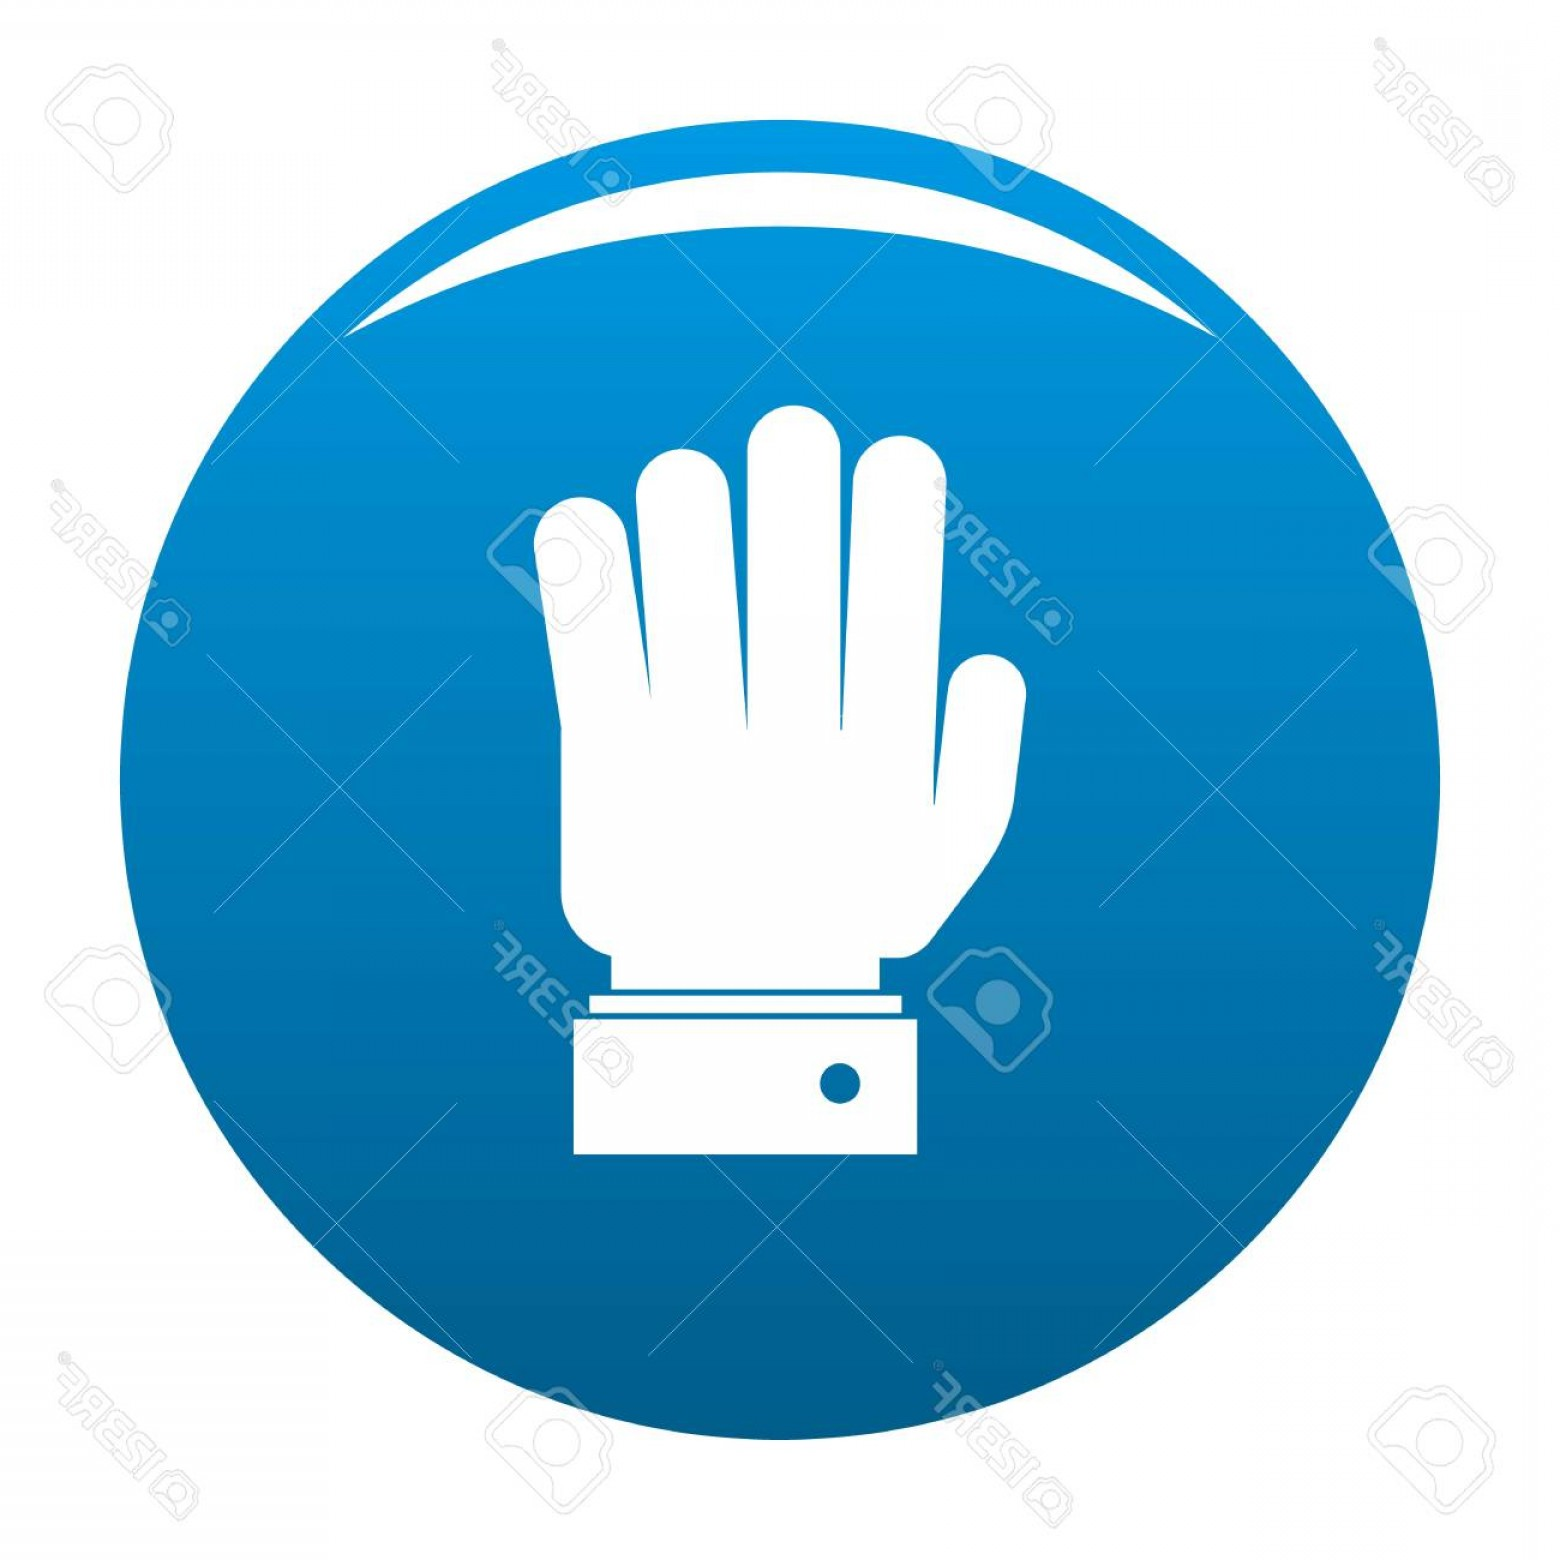 Hand Stop Vector Teal: Photostock Vector Hand Stop Icon Vector Blue Circle Isolated On White Background